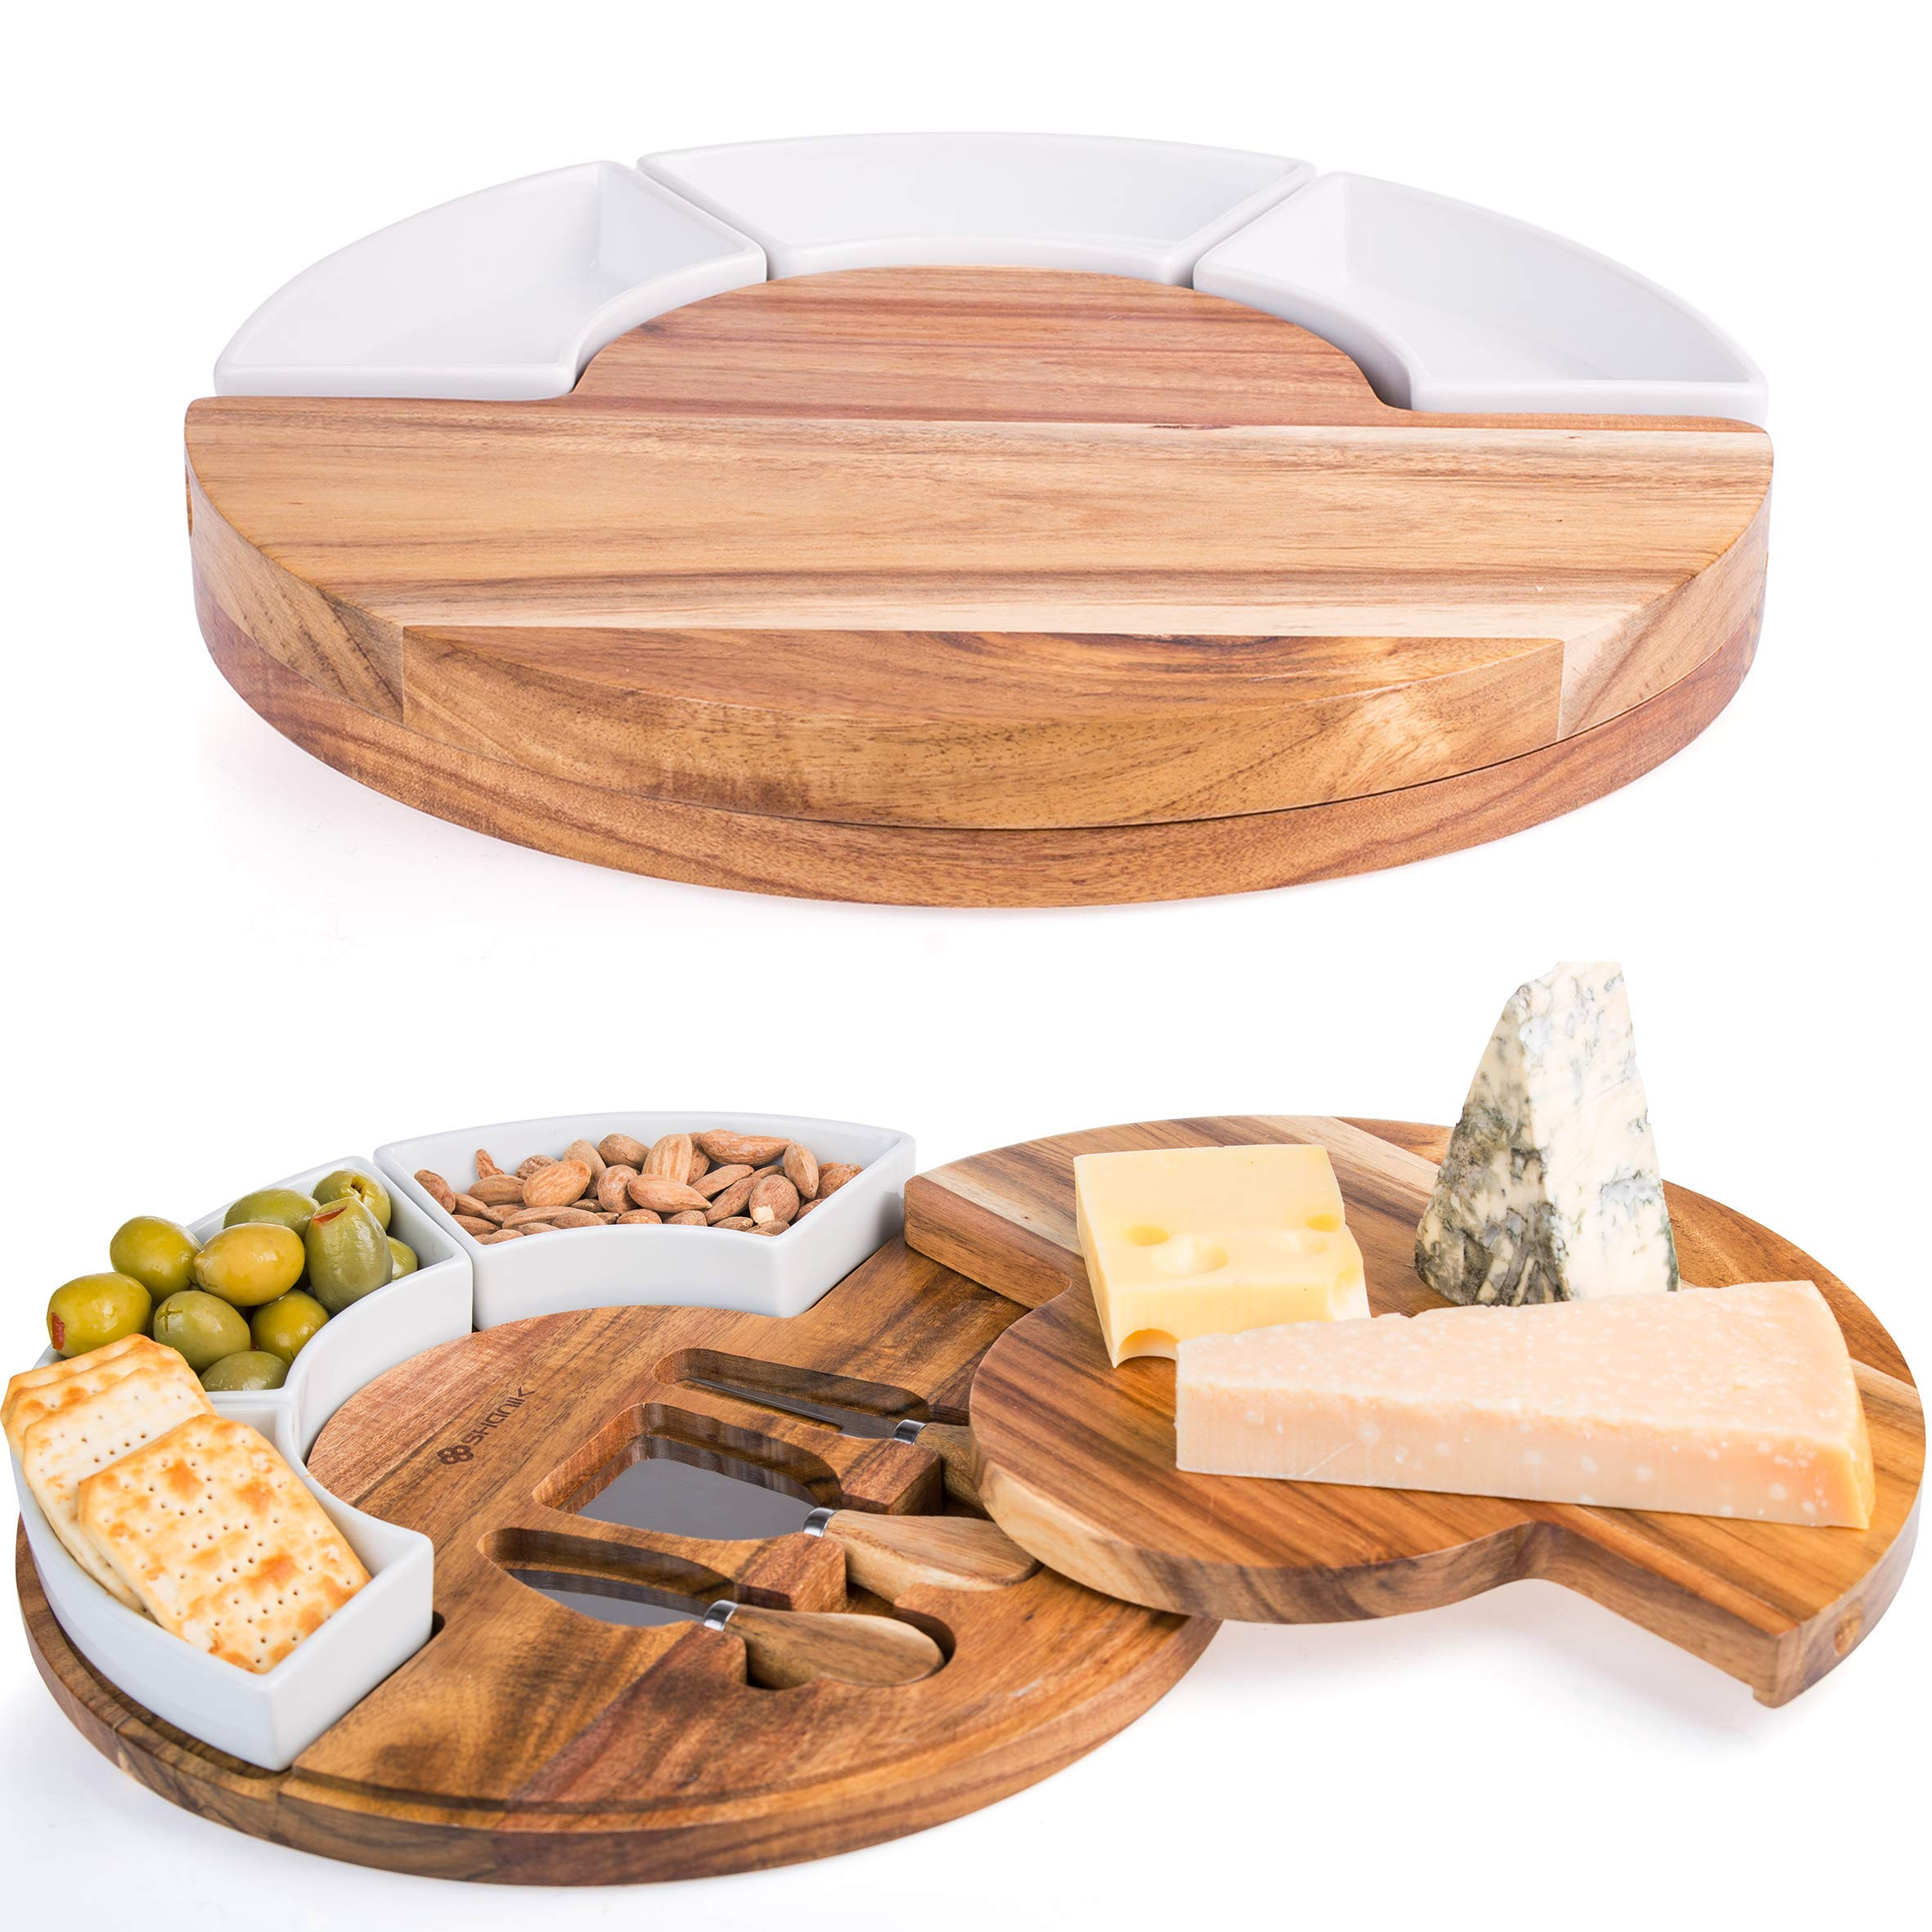 Shanik Cheese Cutting Board Set - Charcuterie Board Set and Cheese Serving Platter. Perfect Meat/Cheese Board and Knife Set for Entertaining and Serving. 3 Knies, Ceramic Bowl and Wine Server Plate. by Shanik